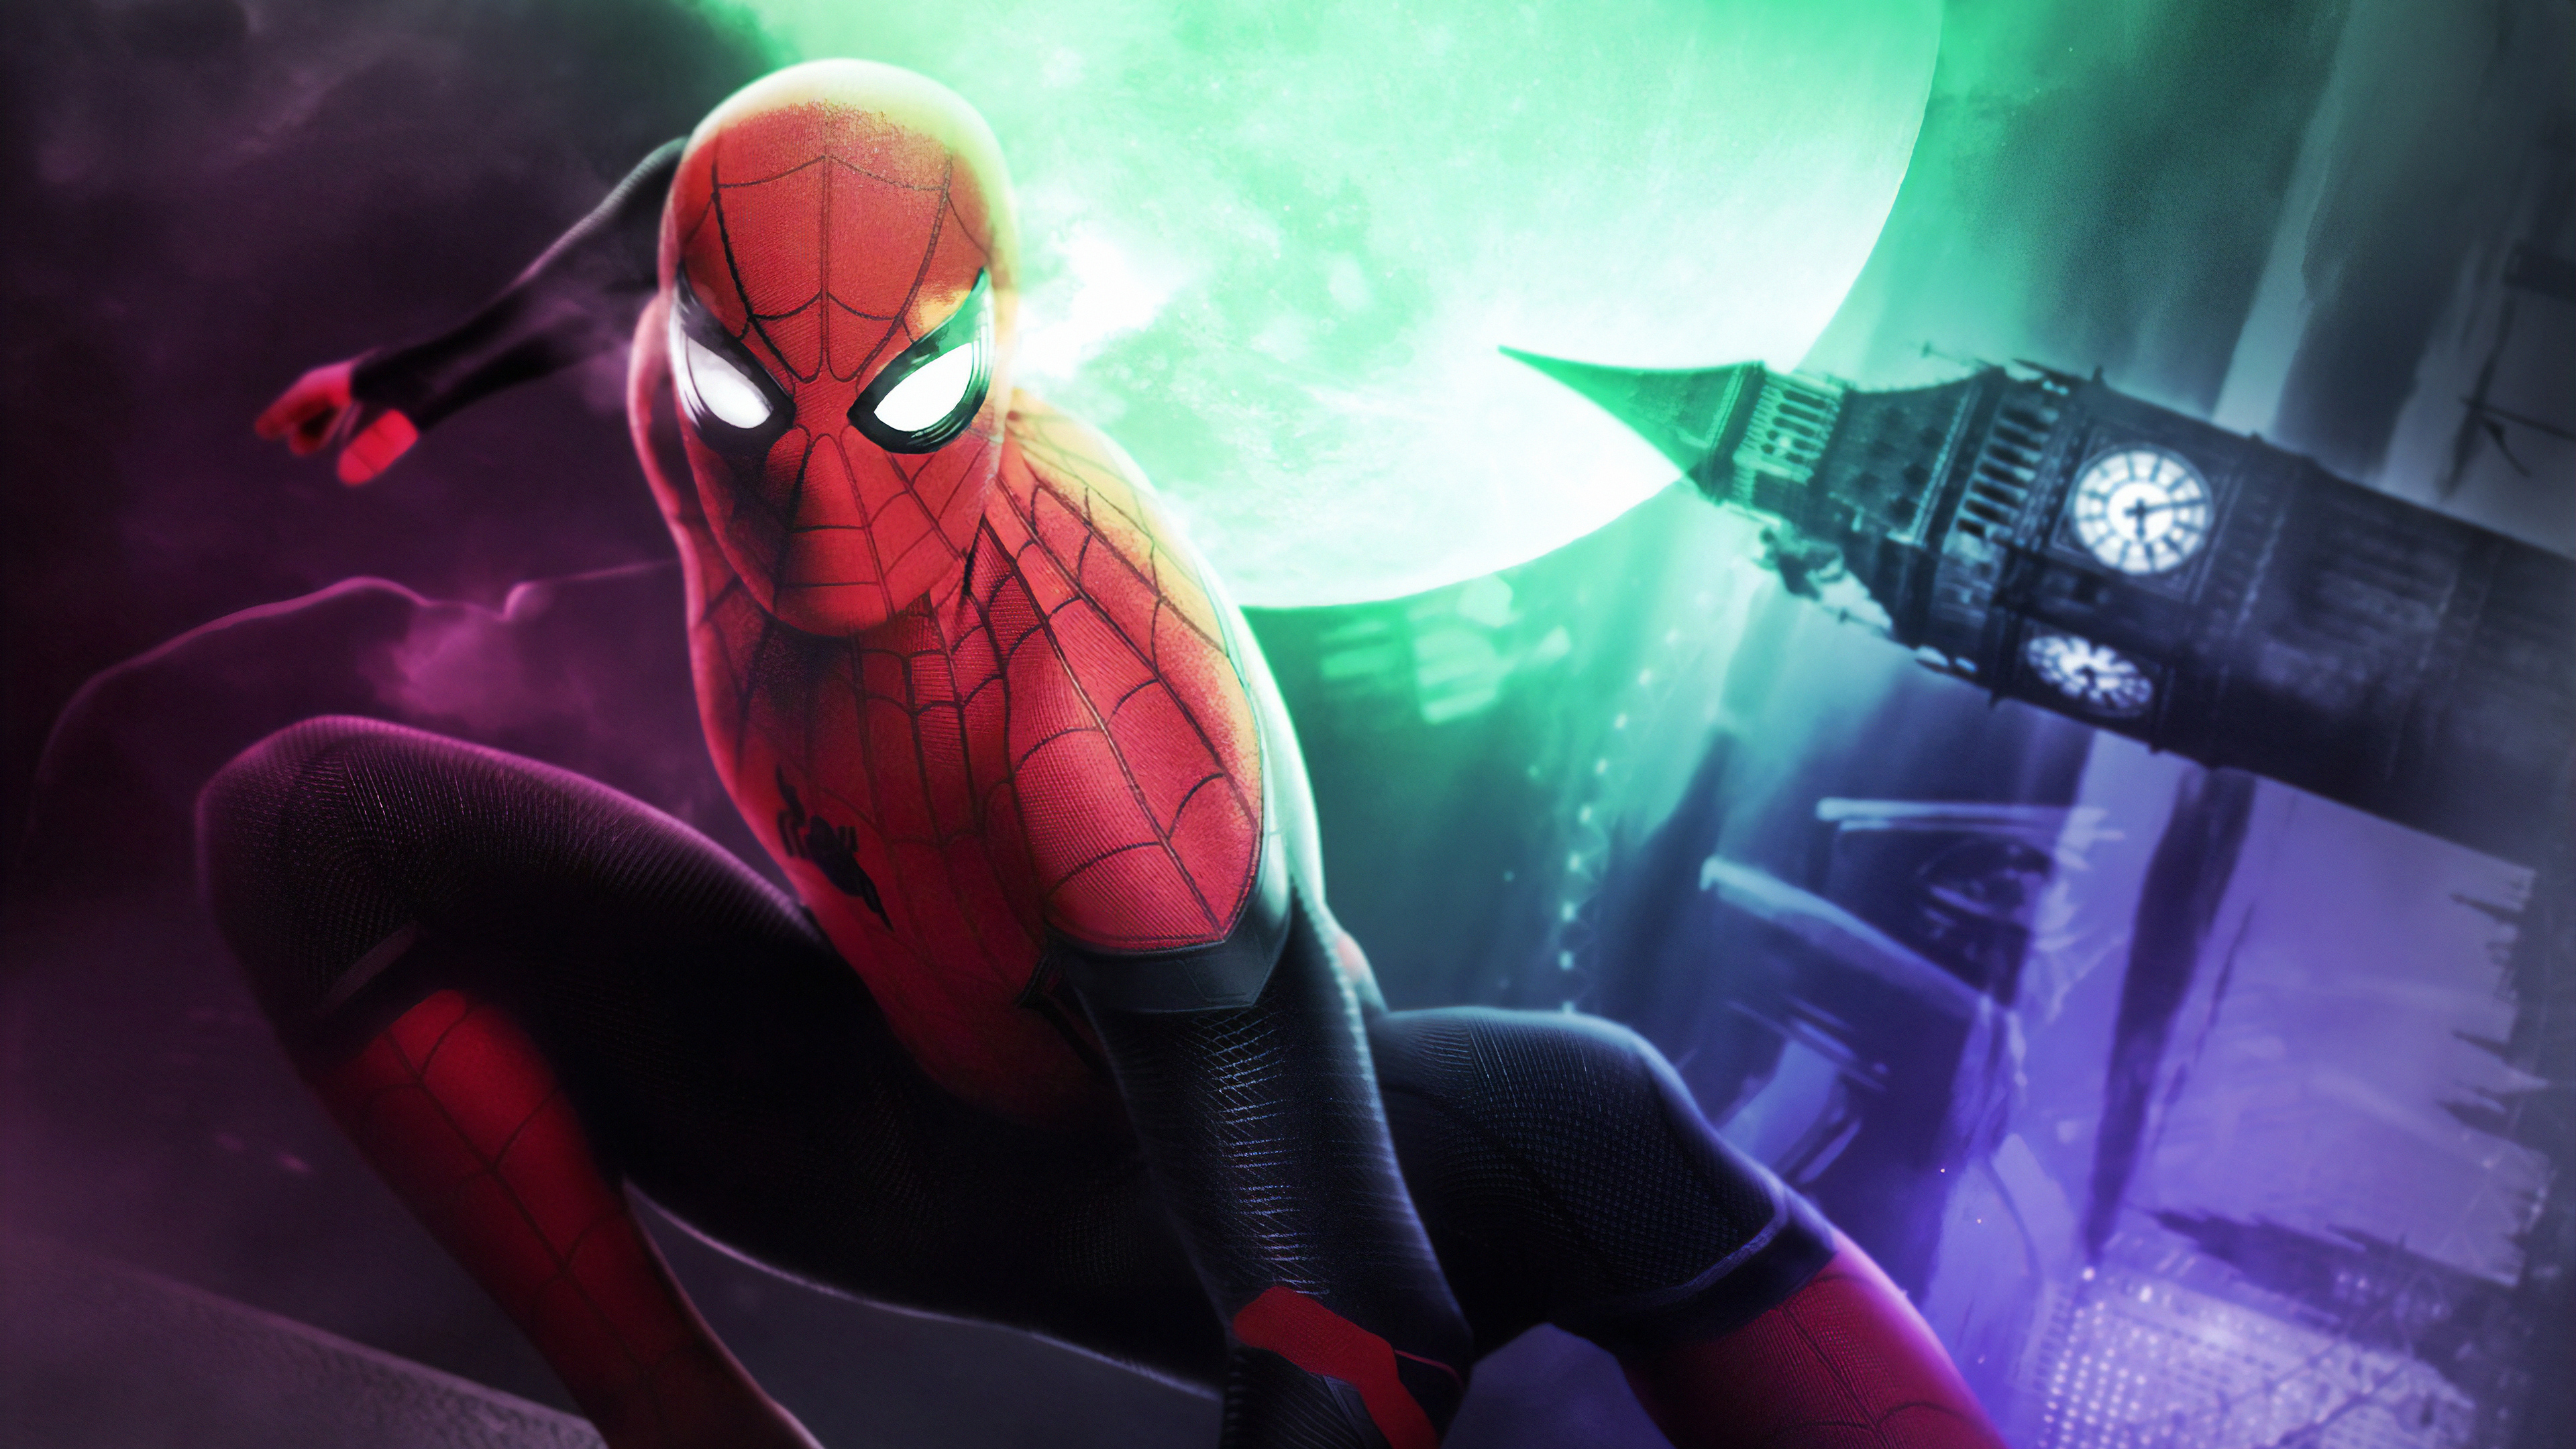 spiderman farfromhome 1570918579 - Spiderman Farfromhome - superheroes wallpapers, spiderman wallpapers, hd-wallpapers, digital art wallpapers, artwork wallpapers, artstation wallpapers, art wallpapers, 4k-wallpapers